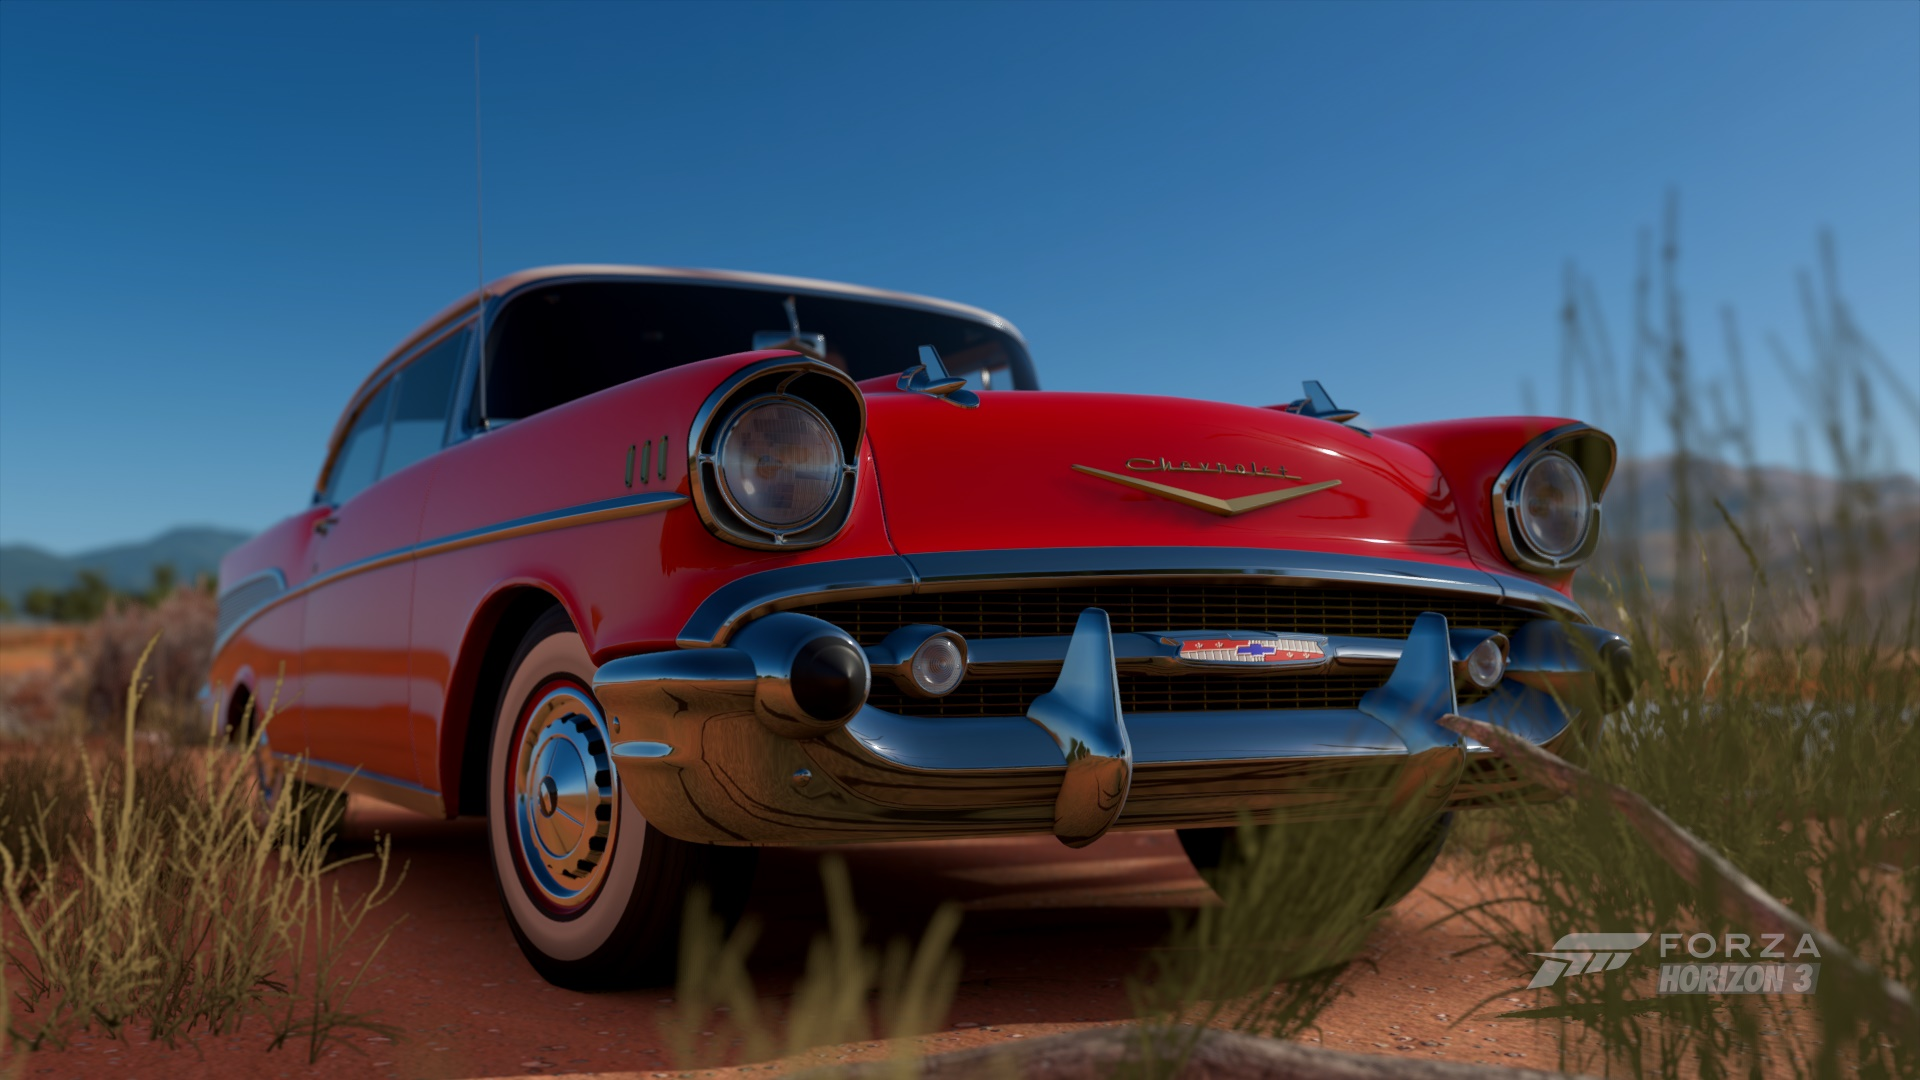 Forza Horizon 3 Cars 57 Chevy Bel Air Rear Bumper 1957 Chevrolet Photo By Ninetyninexx